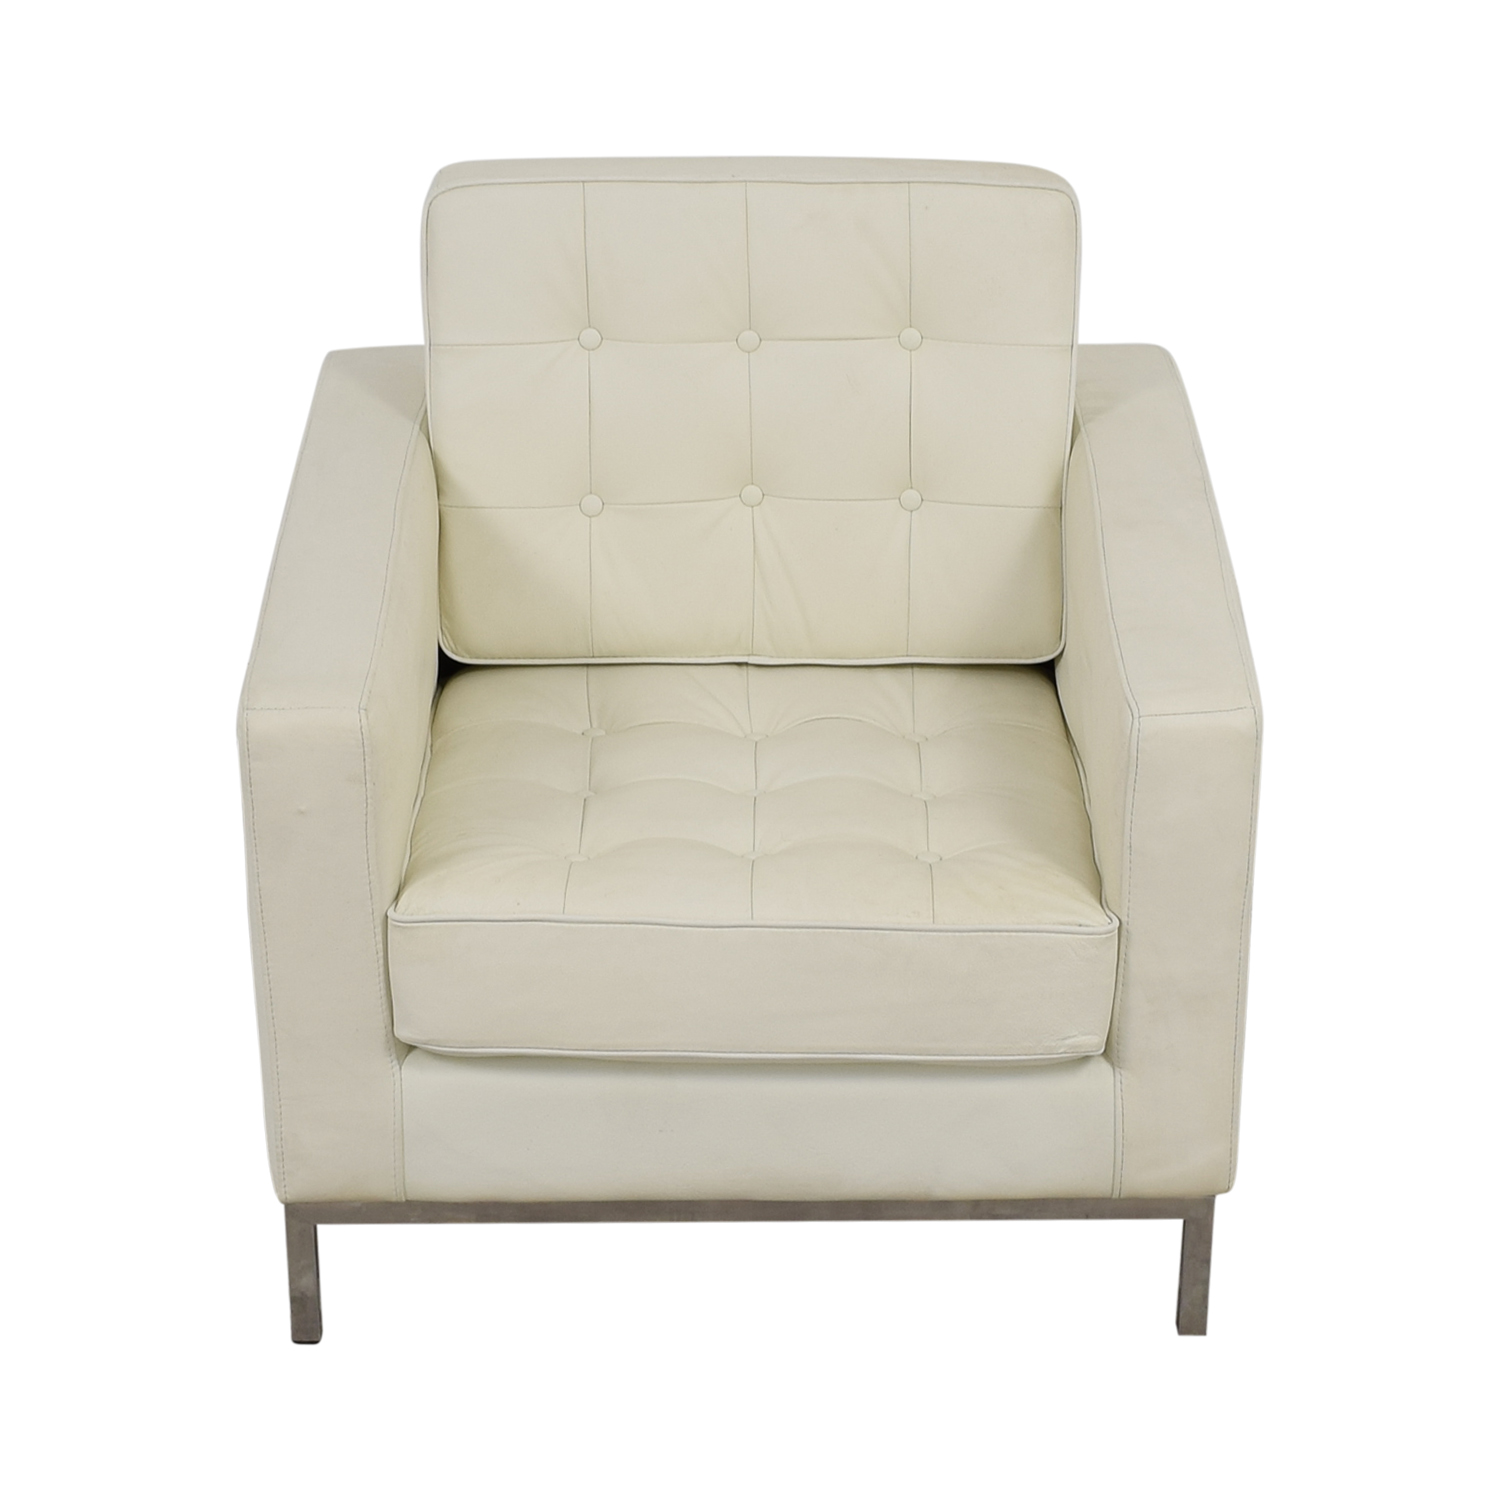 White Leather Tufted Accent Armchair / Chairs